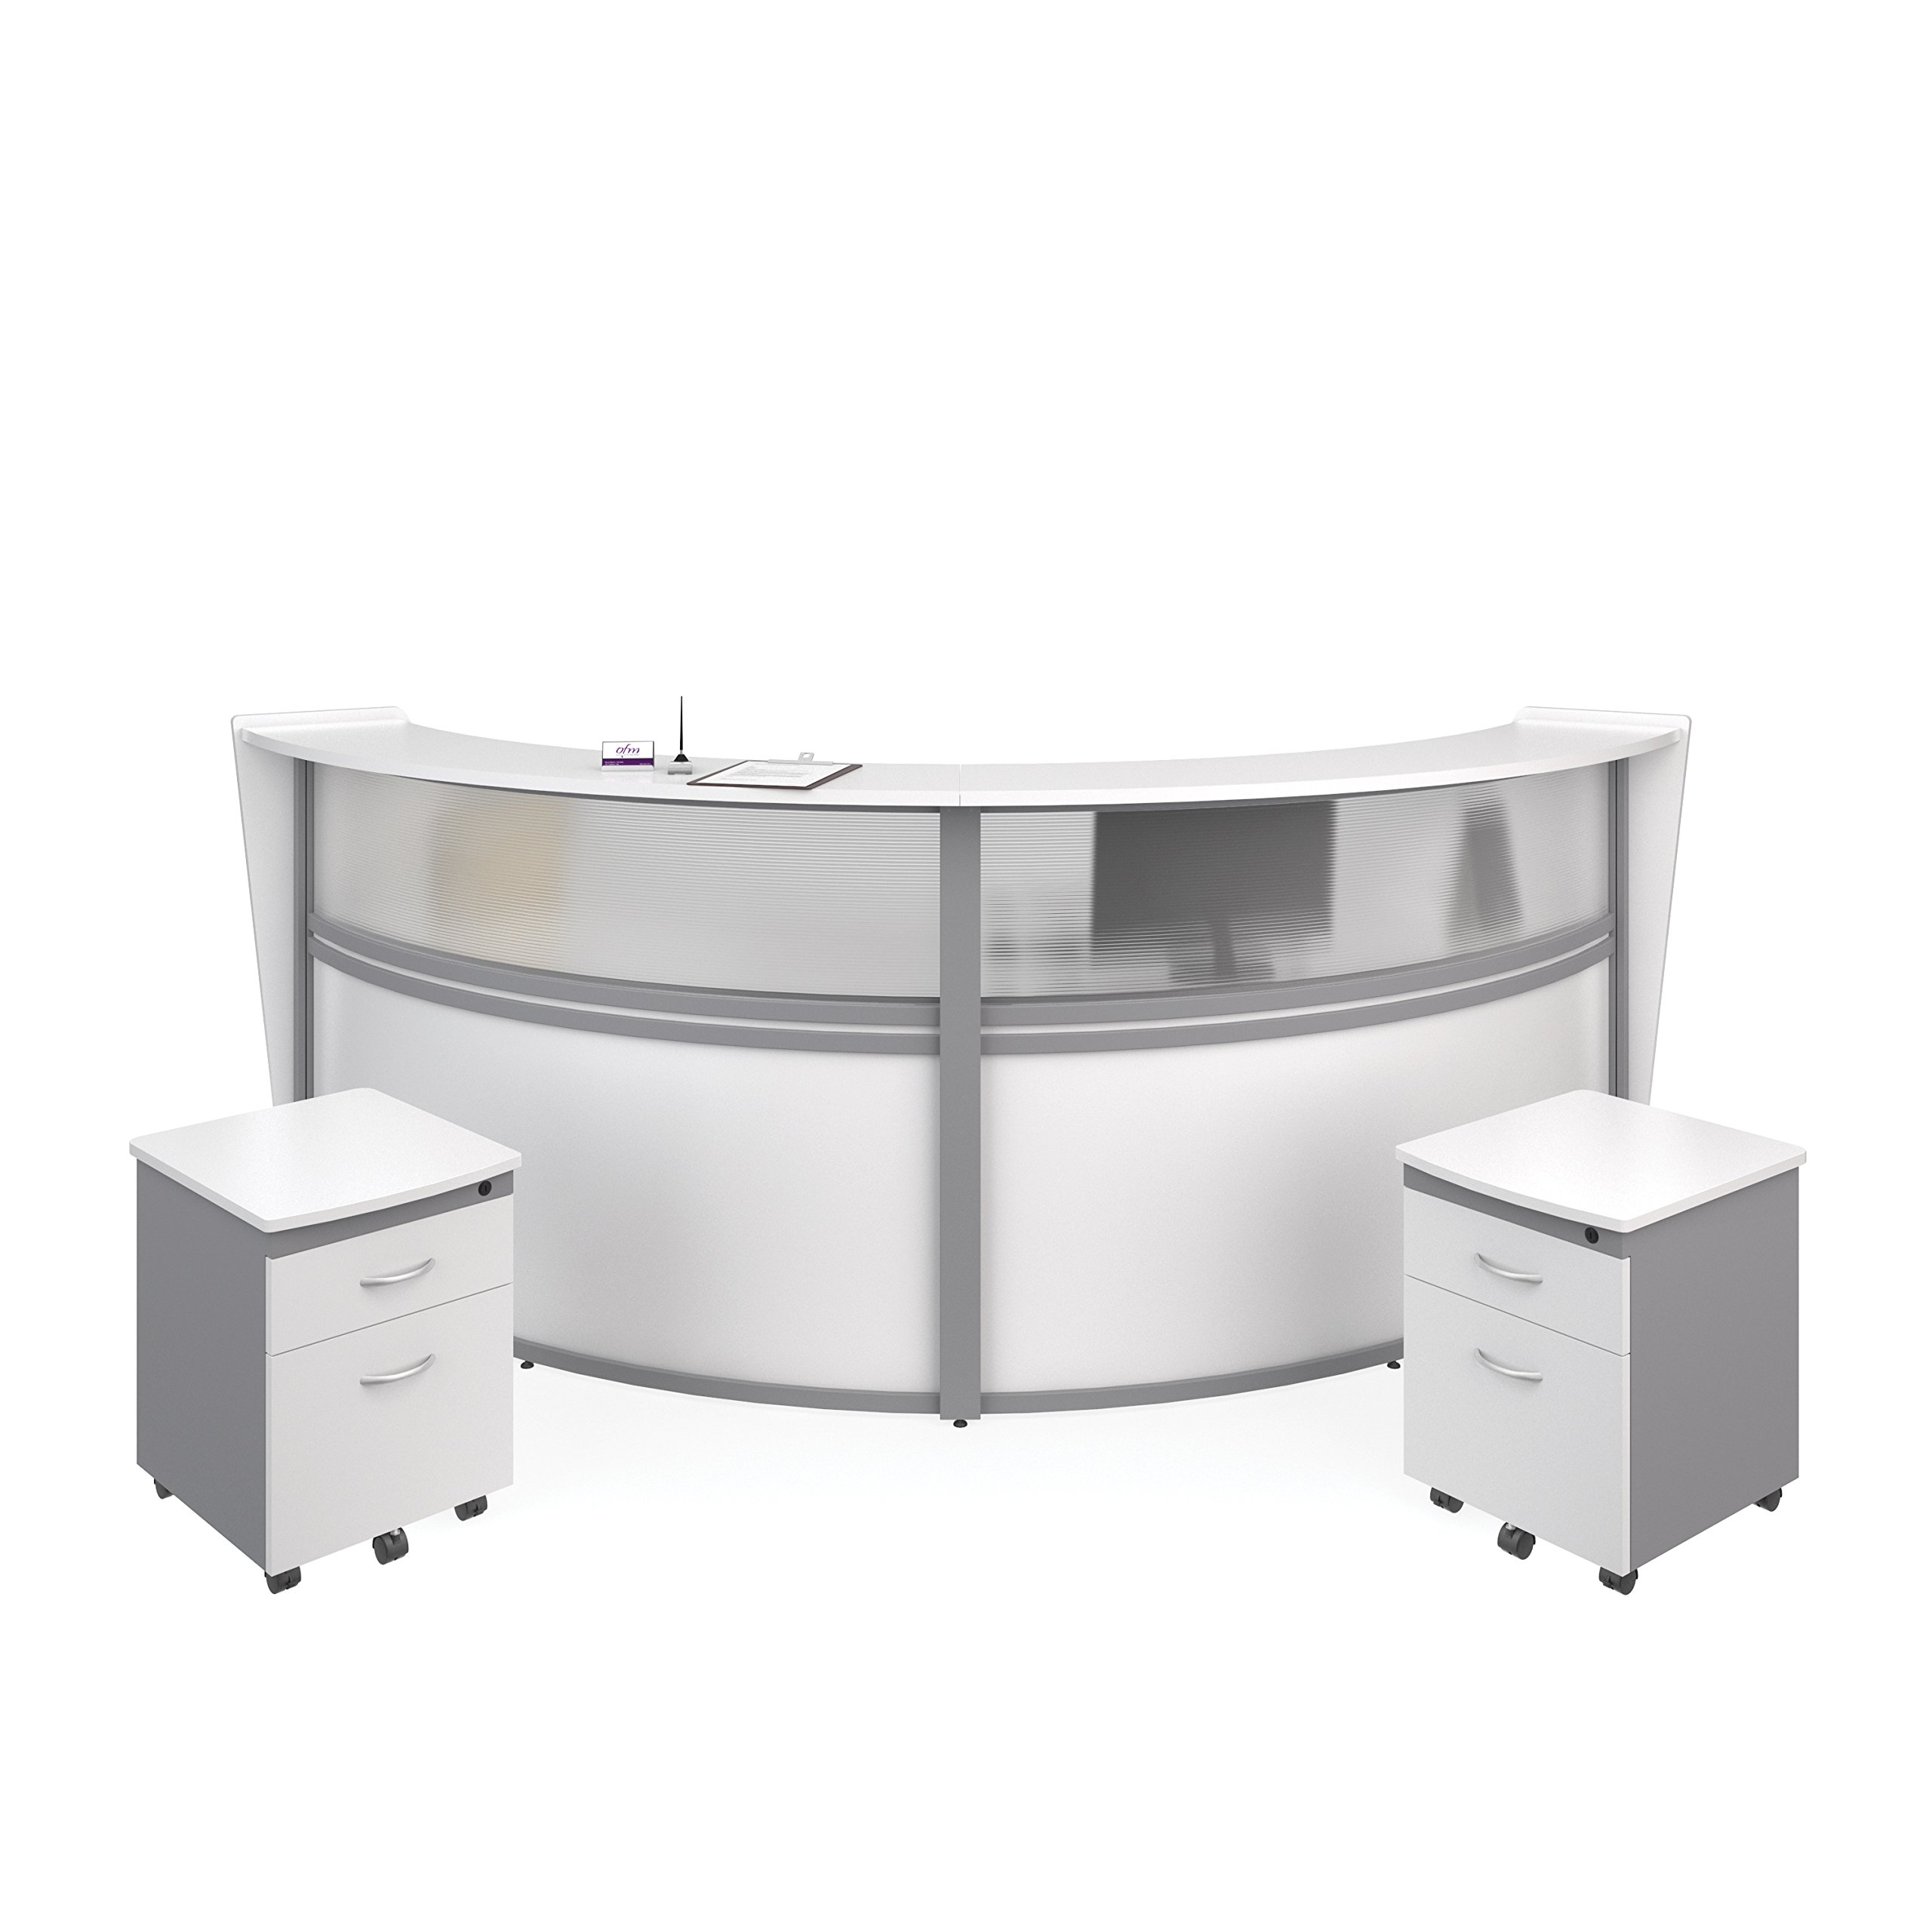 OFM Marque Series Plexi Double-Unit Curved Reception Station - Office Furniture Receptionist/Secretary Desk with Two White Pedestals (PKG-55312-WHITE)